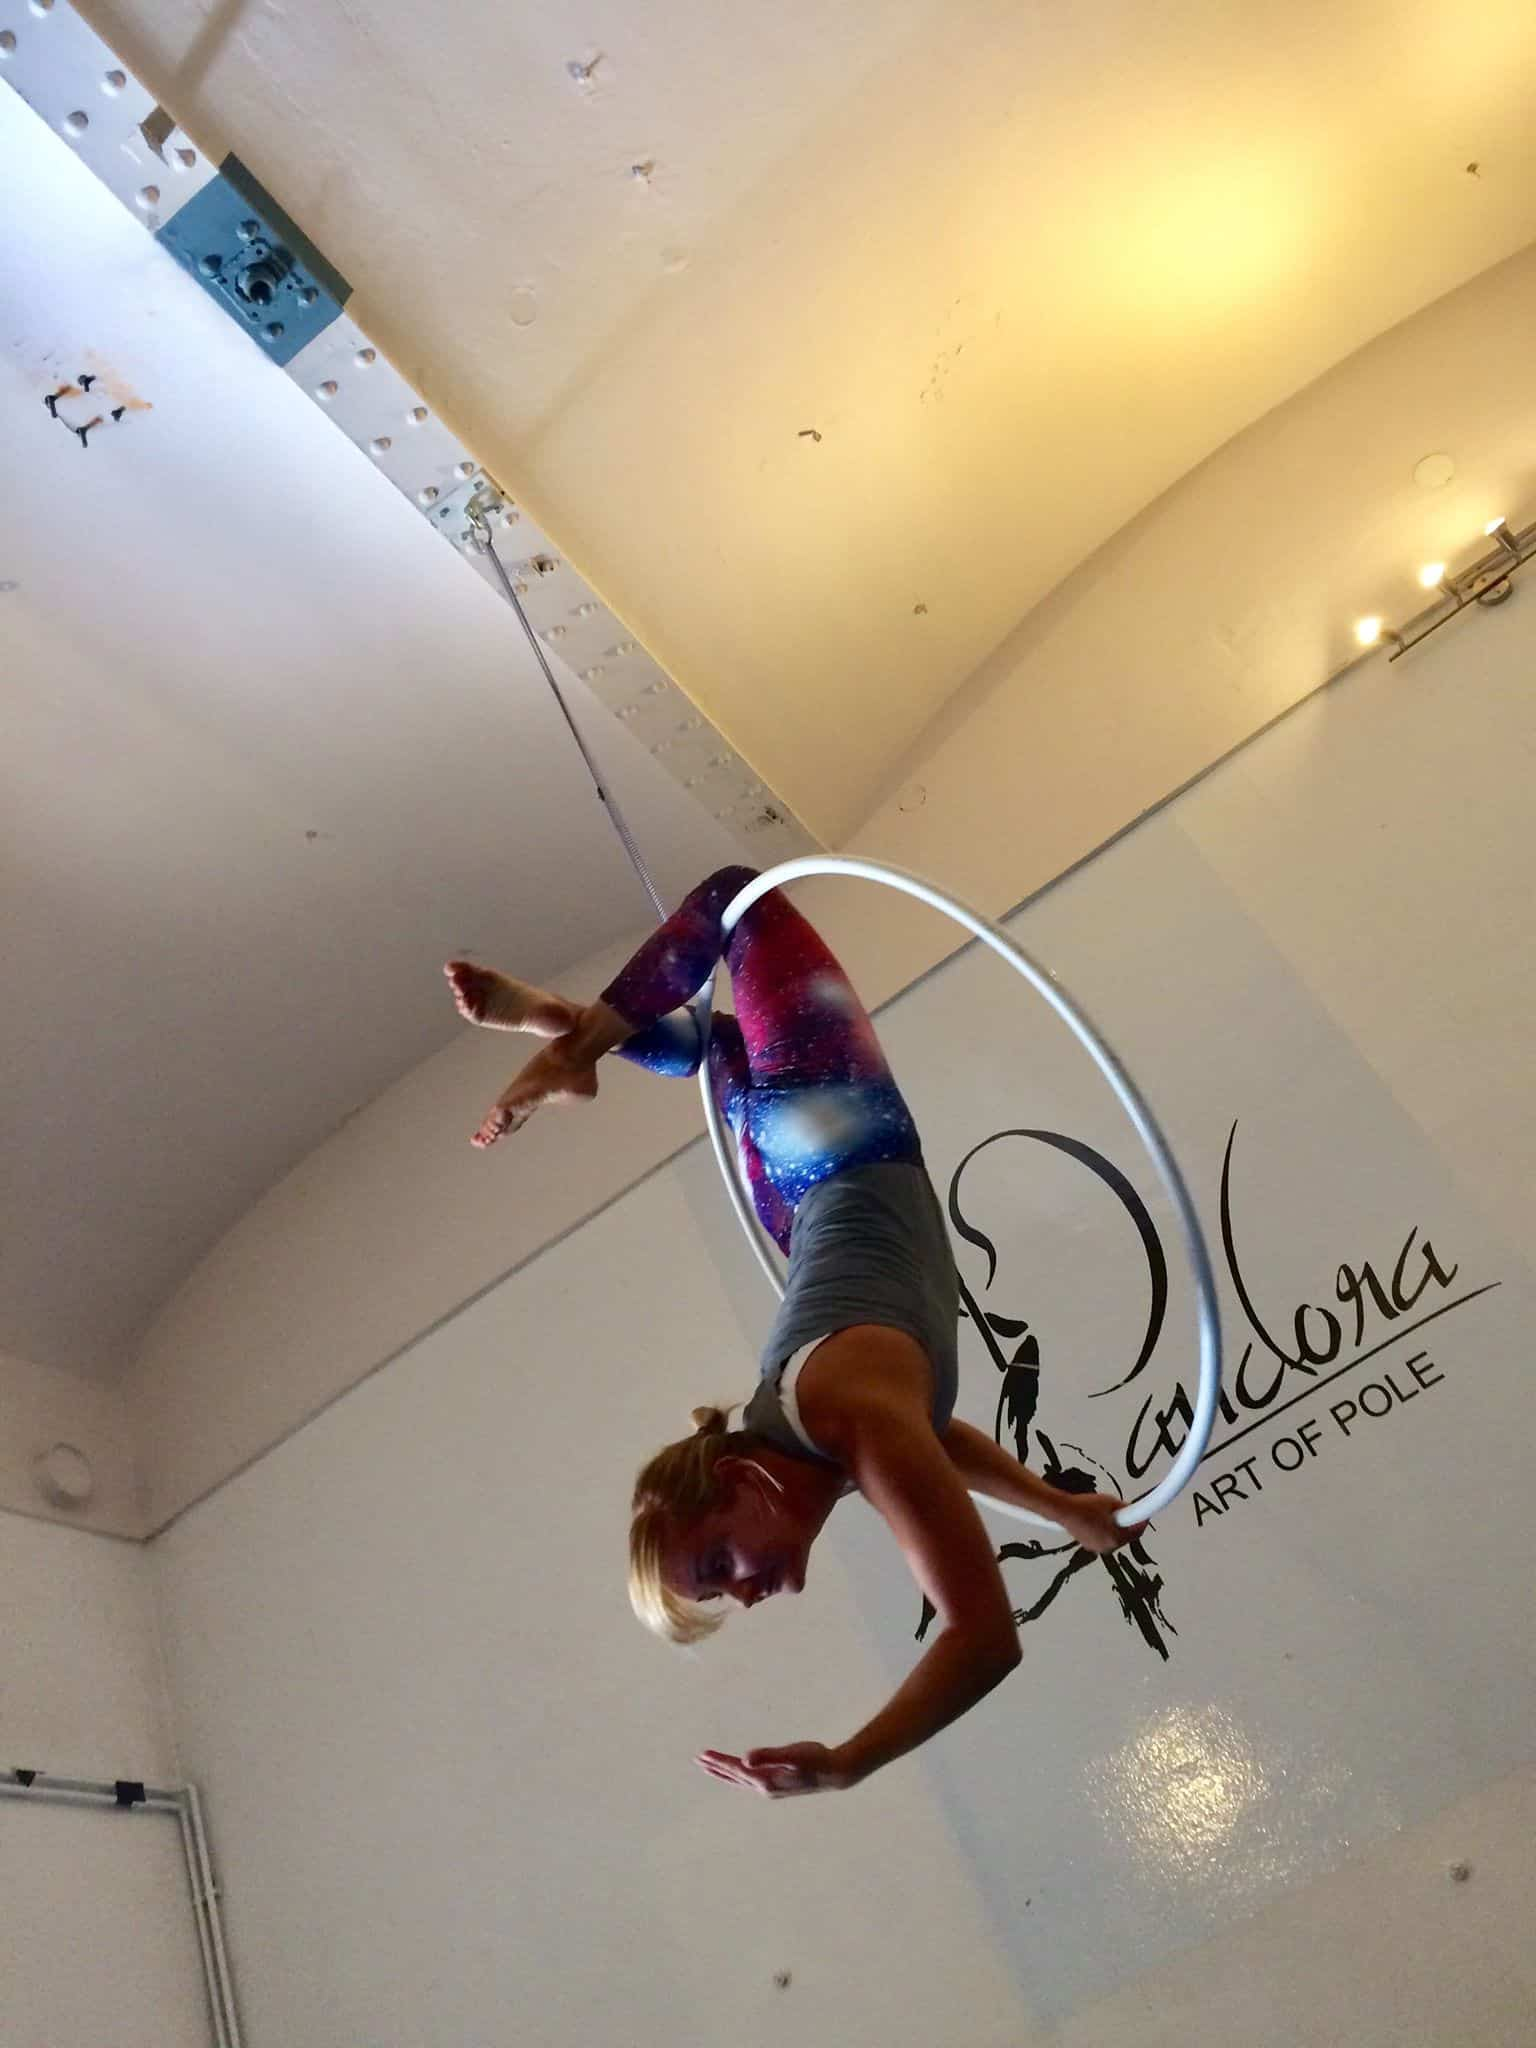 How to learn lyra hoop?